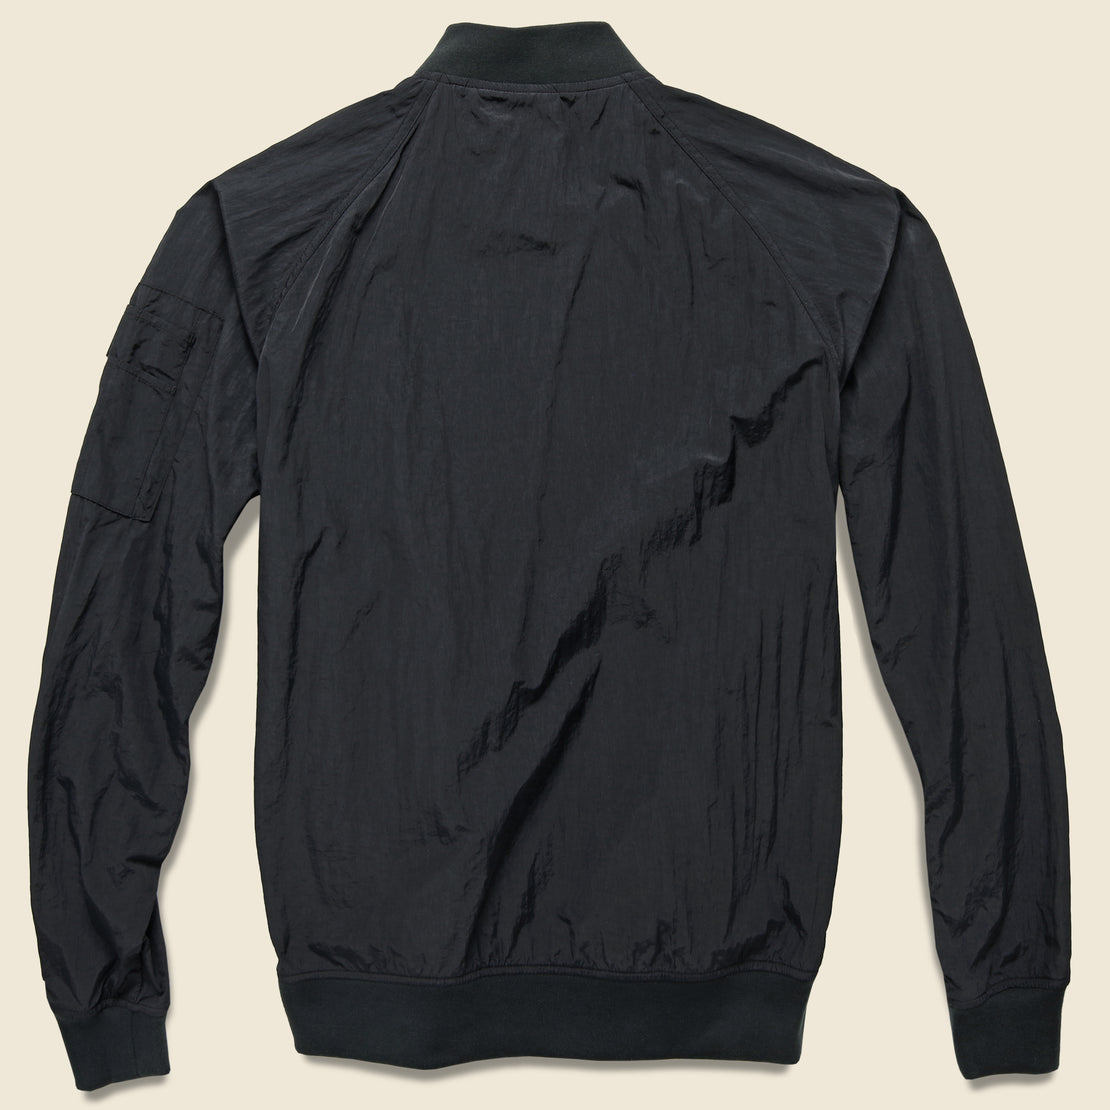 Okenfield Jacket - Black